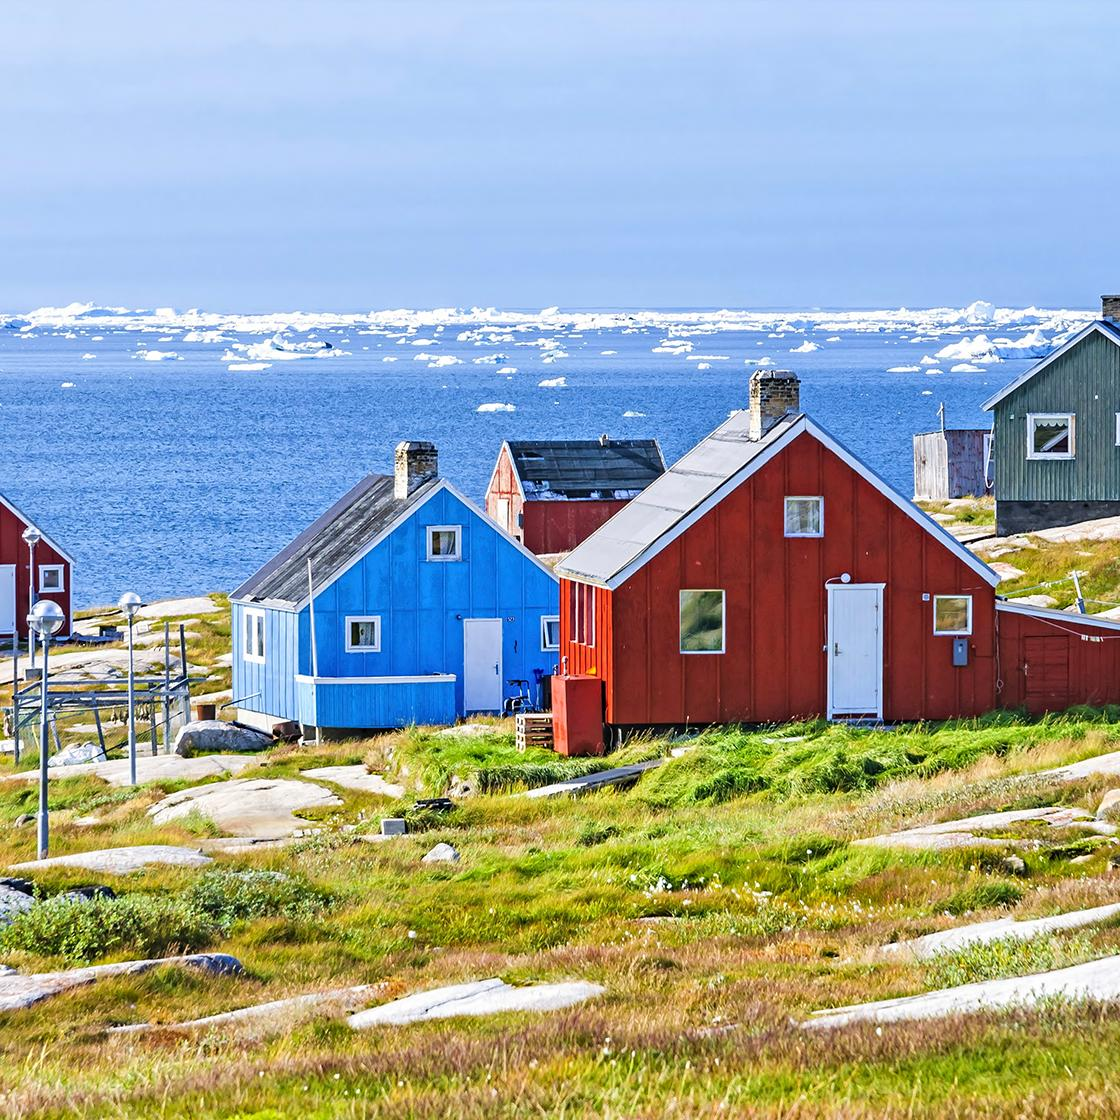 See Greenland on an Intrepid Travel Tour